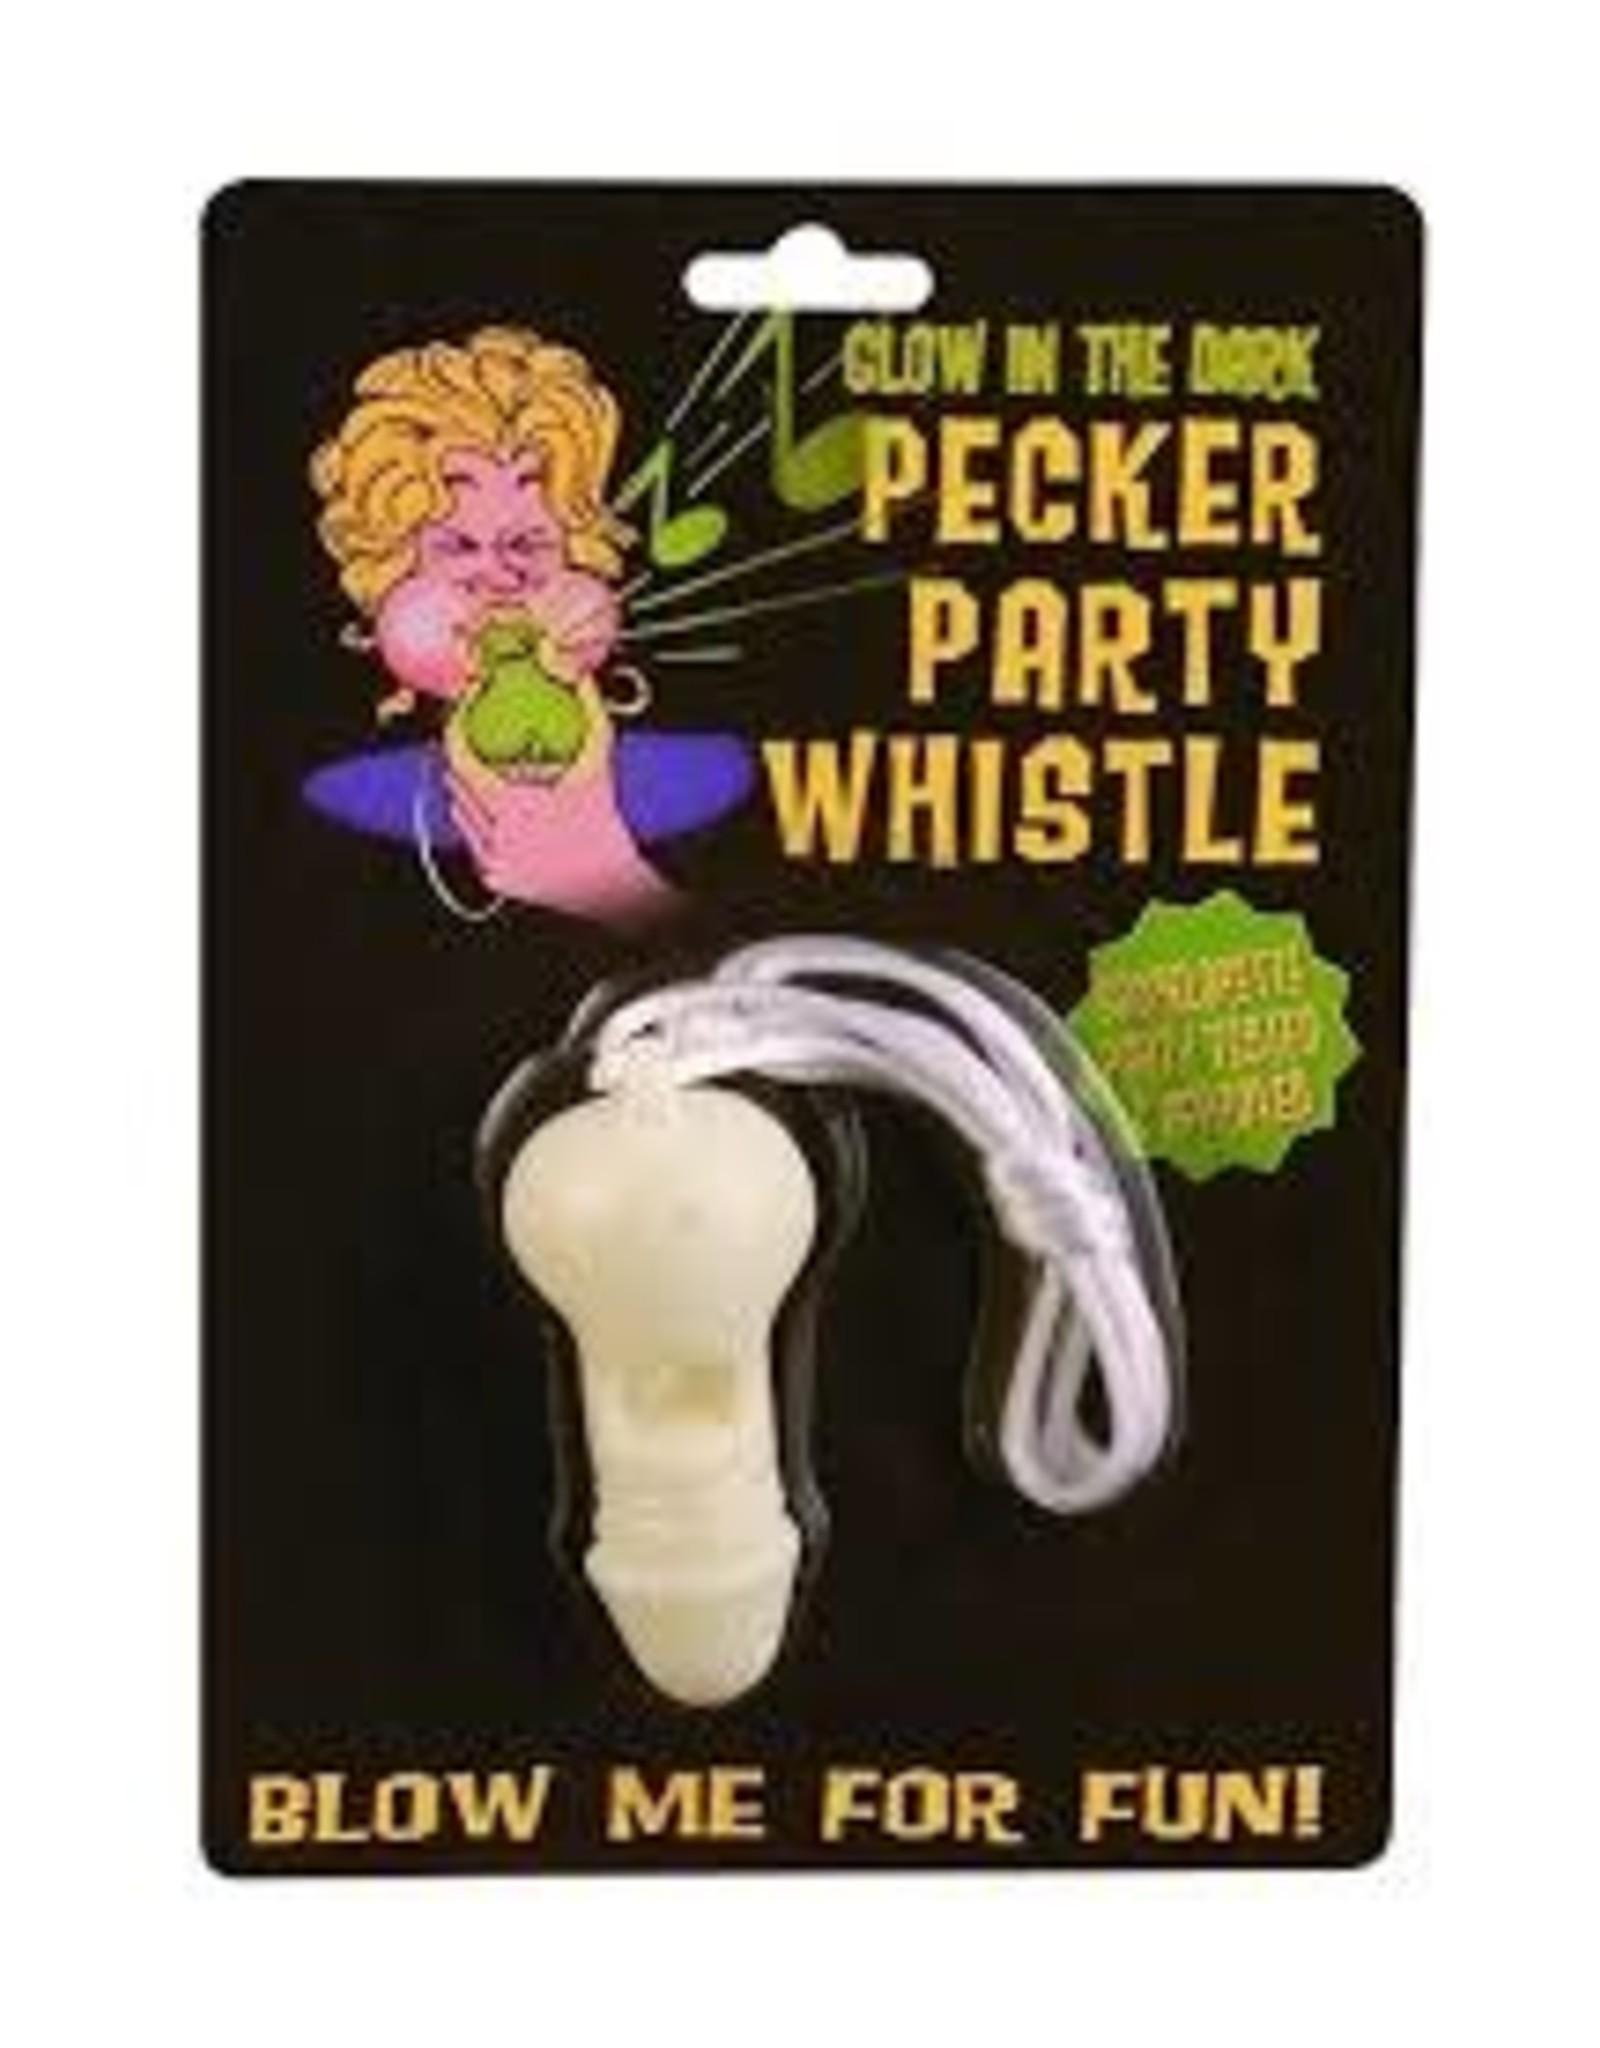 GLOW IN THE DARK PECKER PARTY WHISTLE